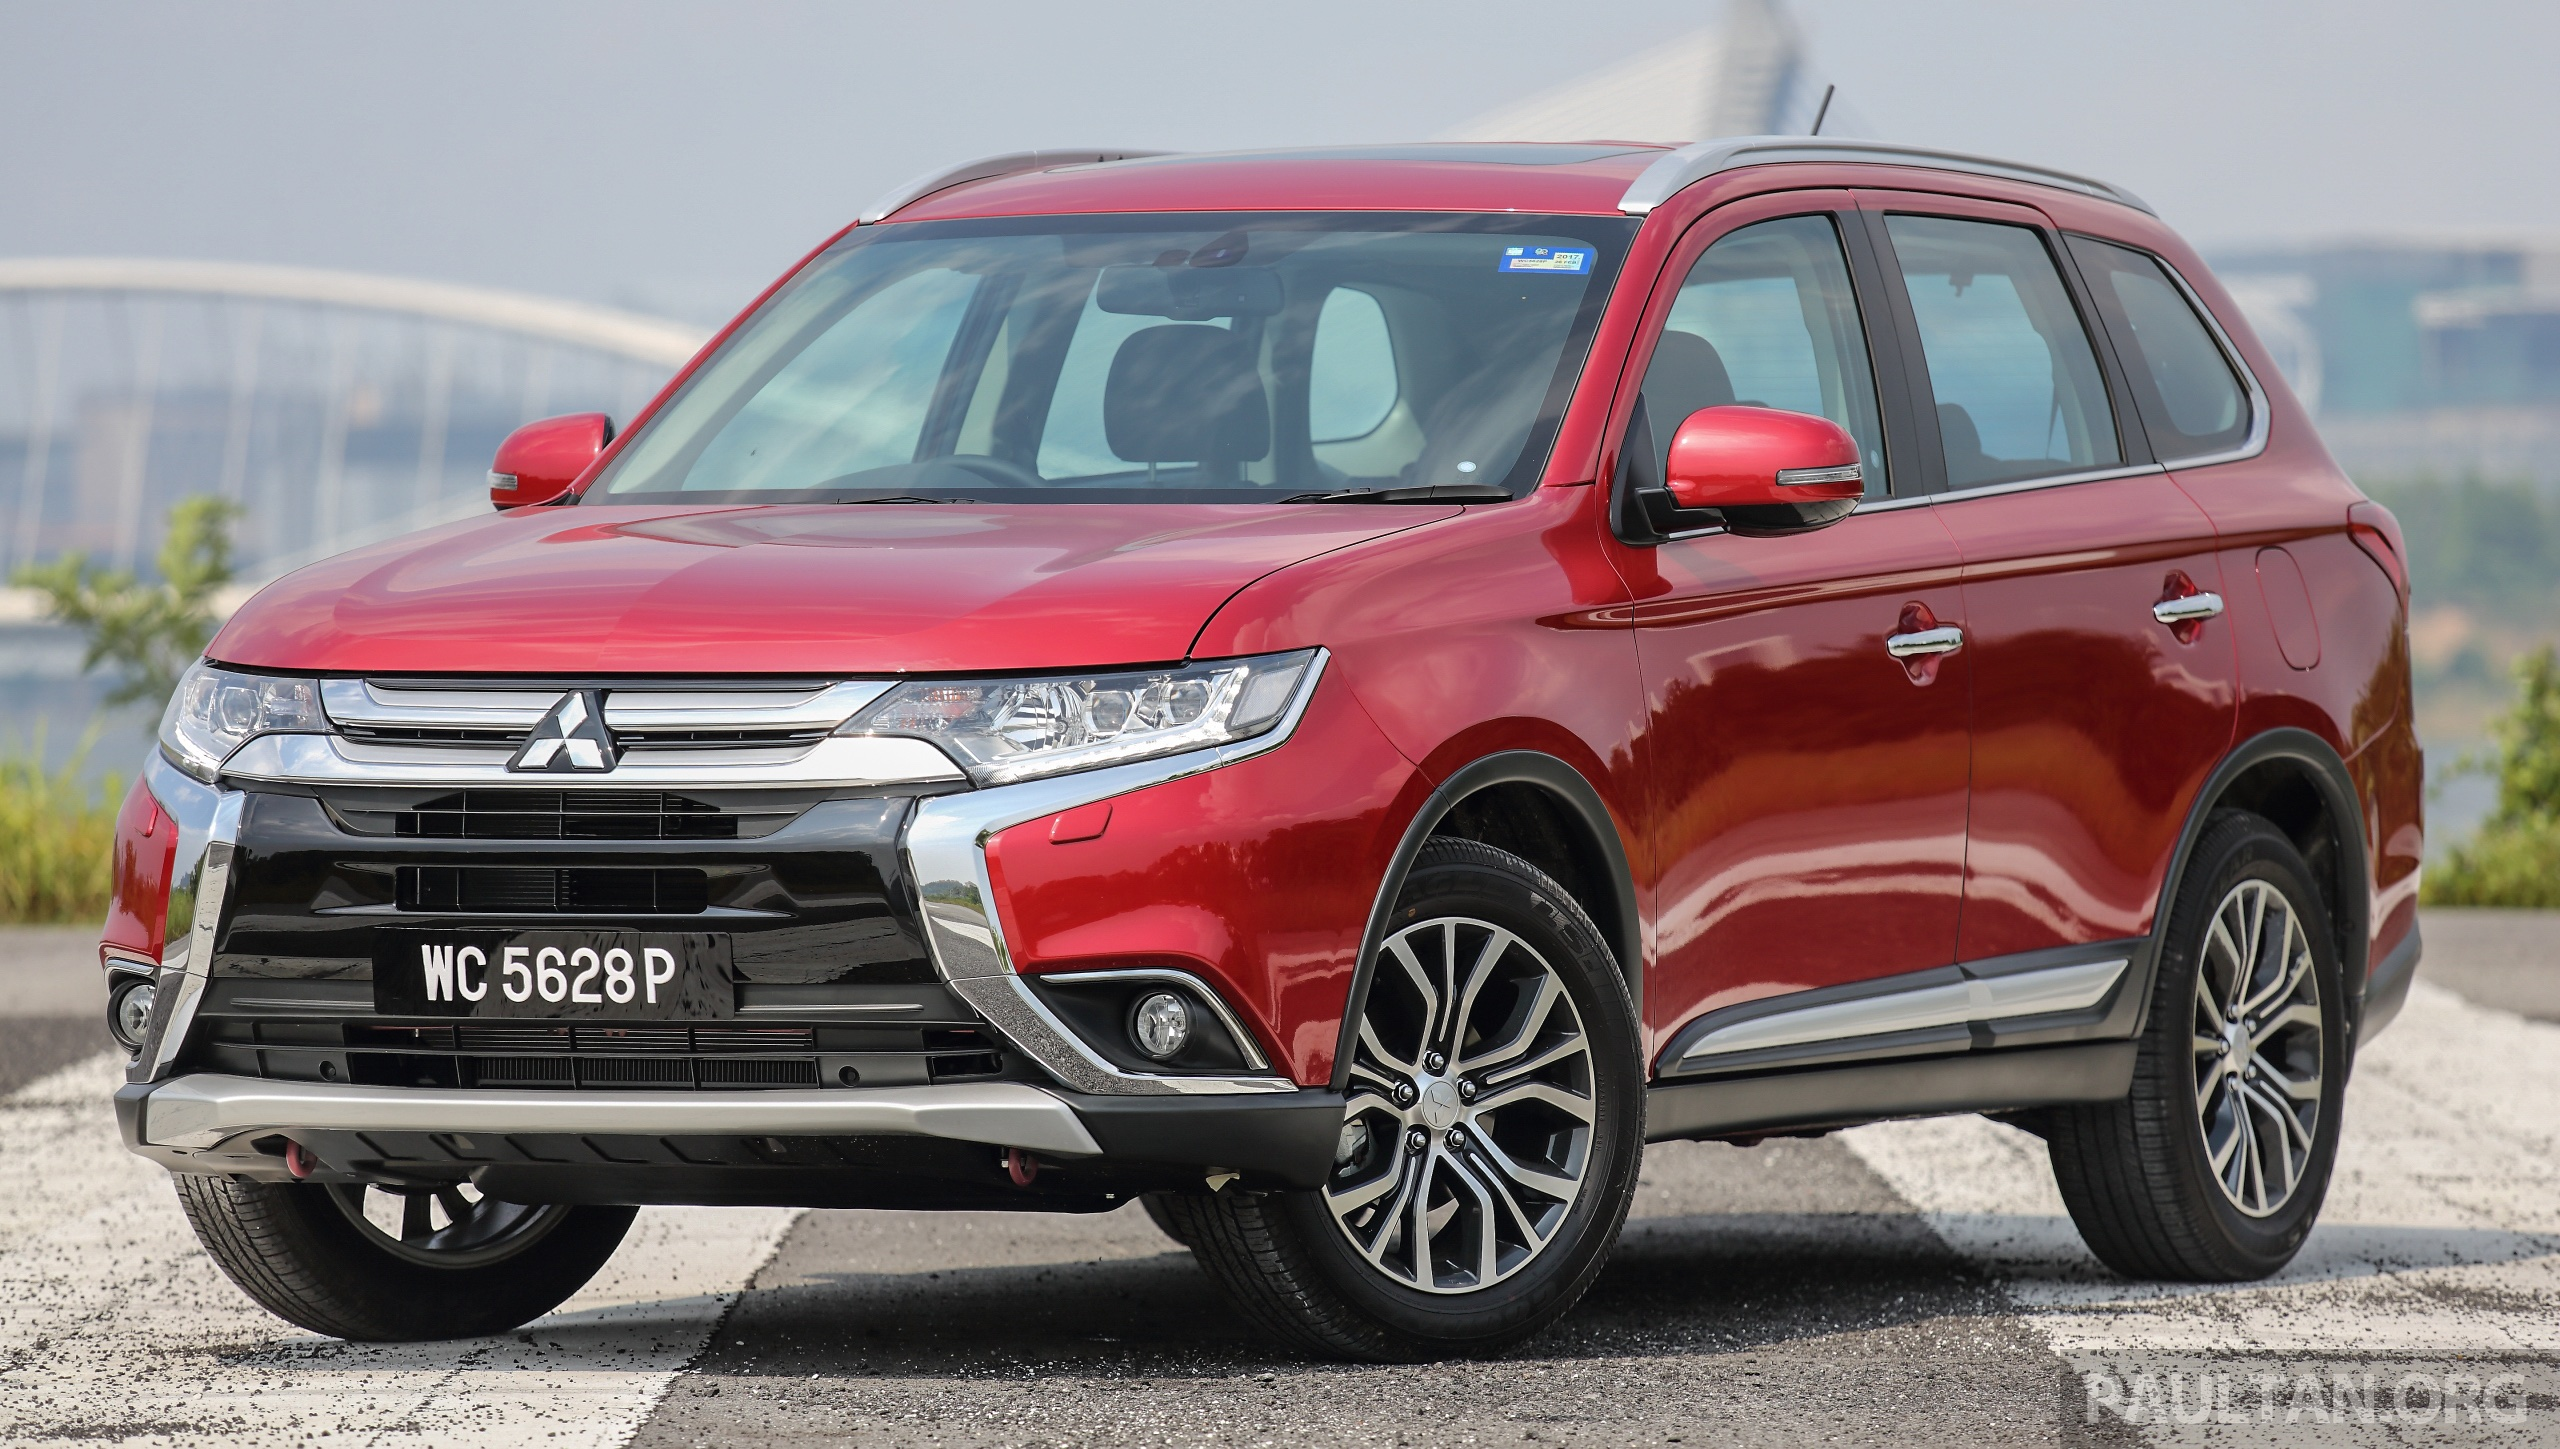 DRIVEN: Mitsubishi Outlander – fresh face, good value Image 469756